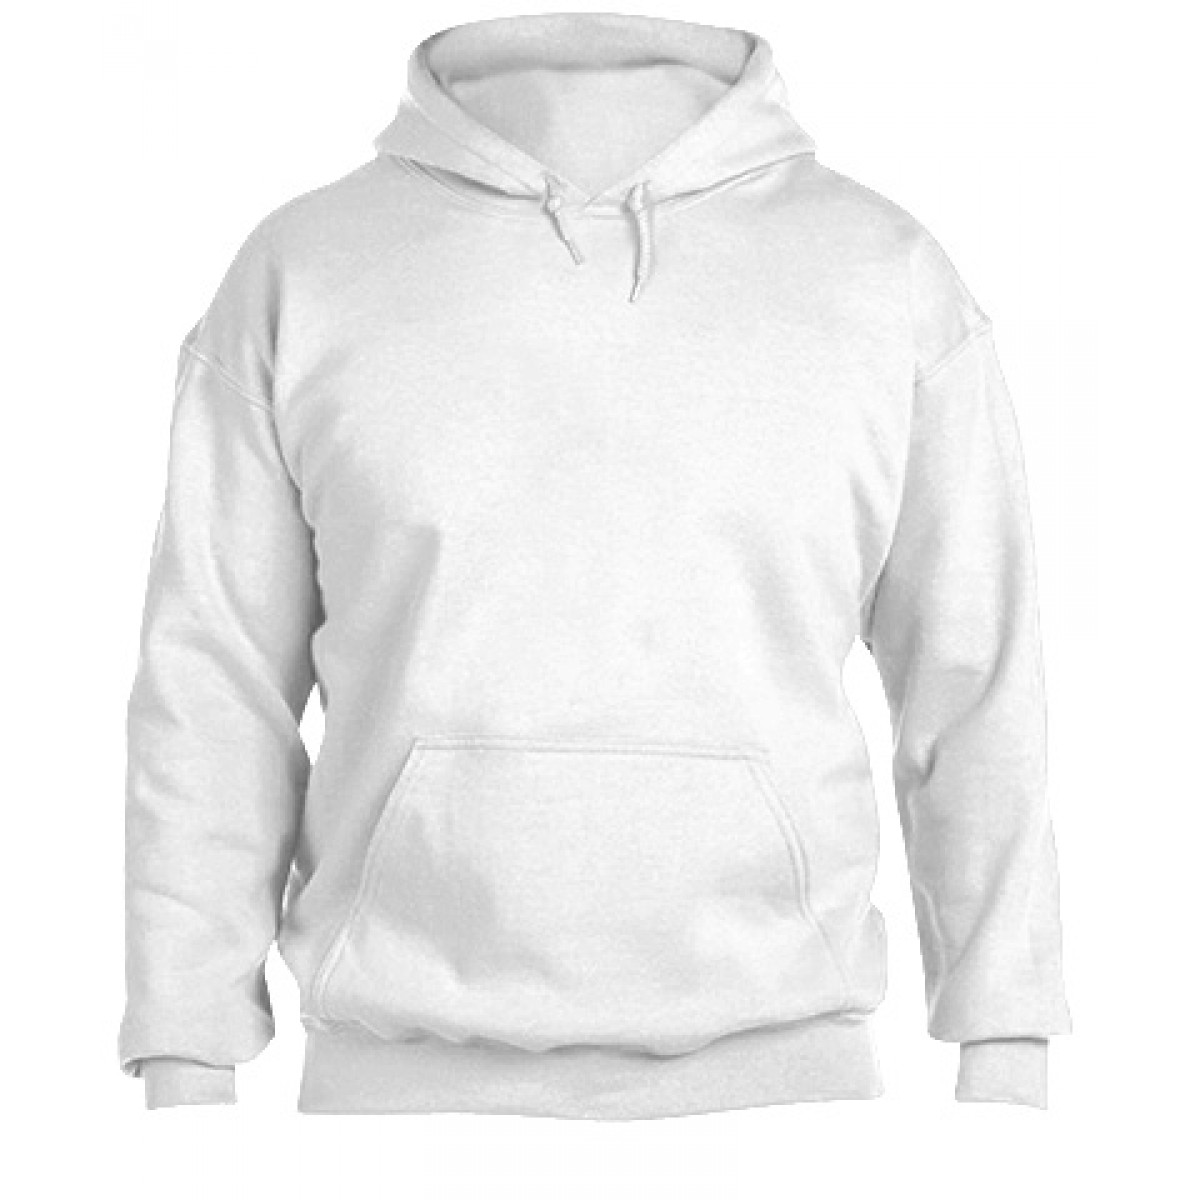 Hooded Sweatshirt 50/50 Heavy Blend Ash Gray